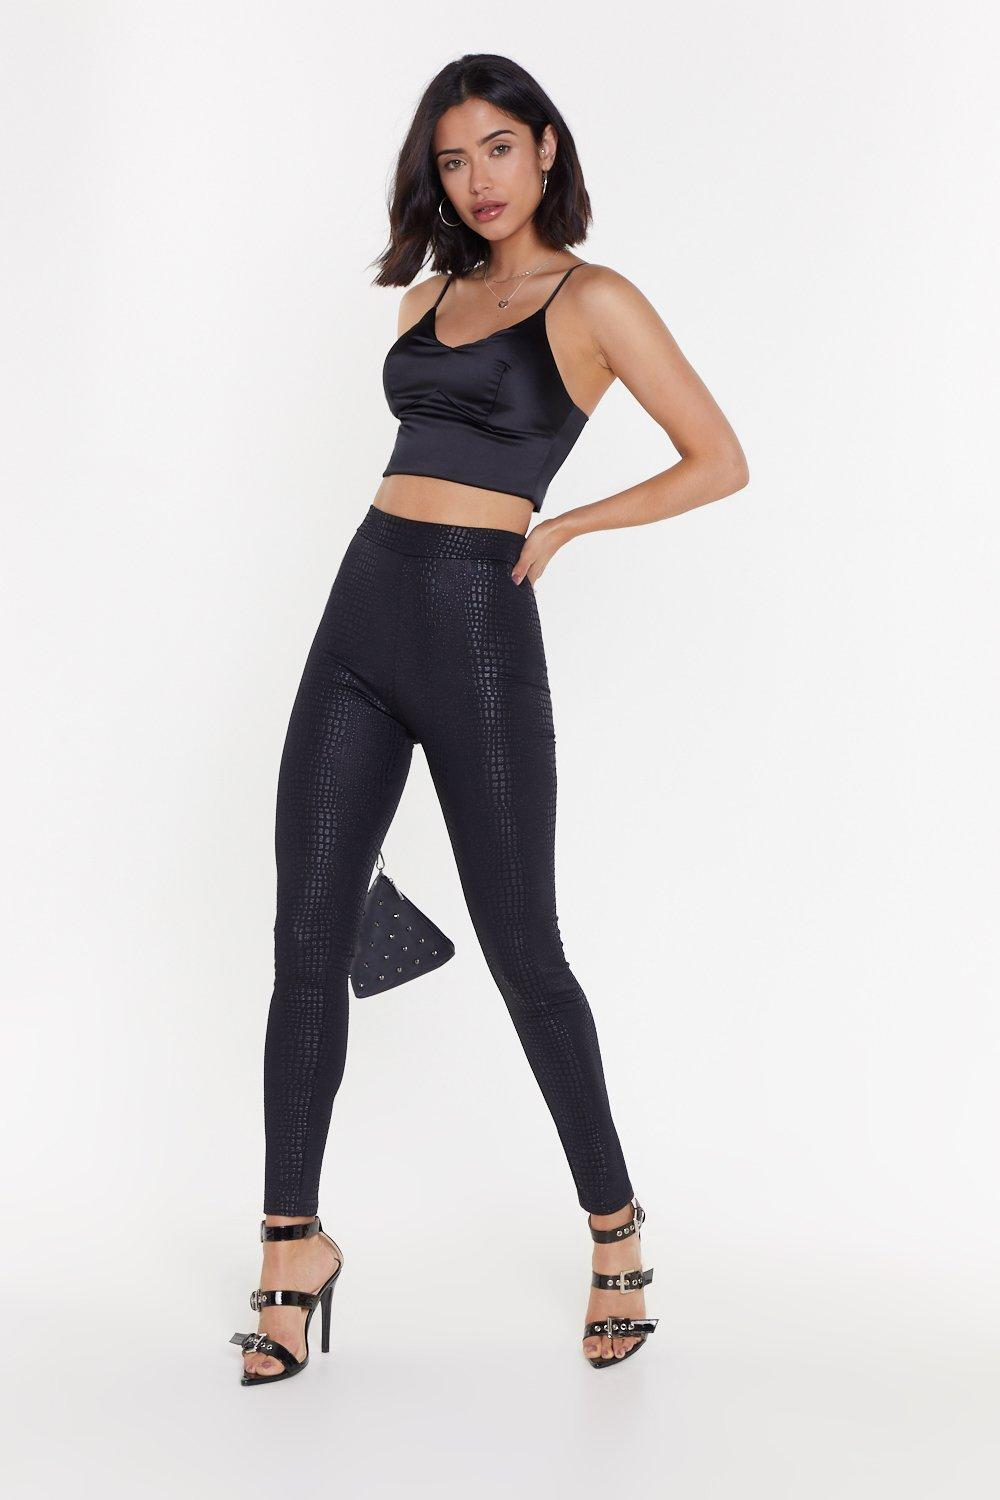 1dd20d2acd89 MS Wet Look Legging   Shop Clothes at Nasty Gal!